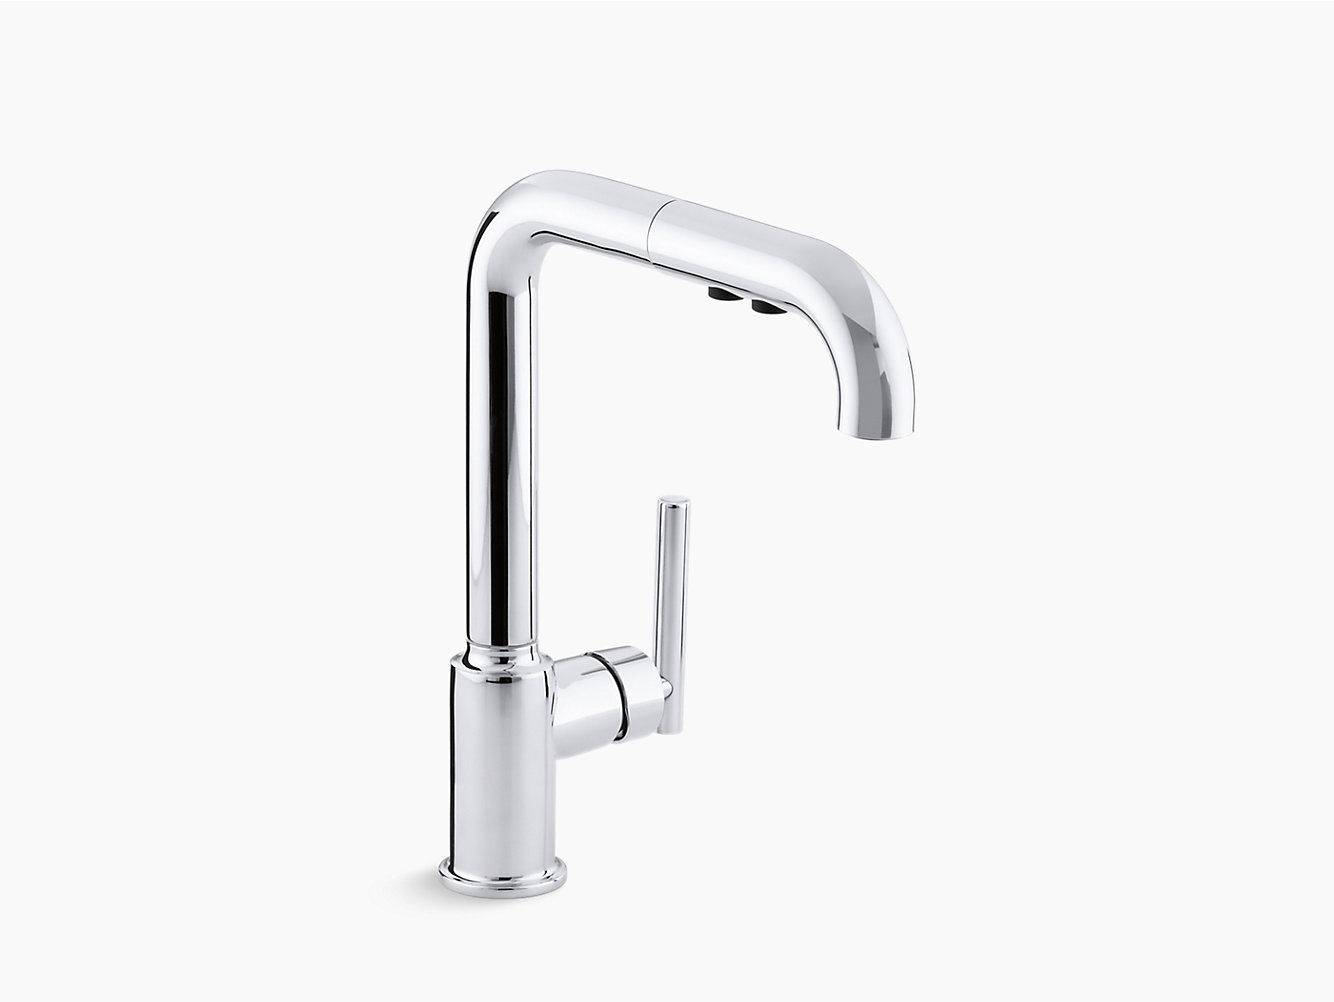 chair kohler purist kitchen tips k faucet vs faucets amazing bridge deck with mount to dining inspiring